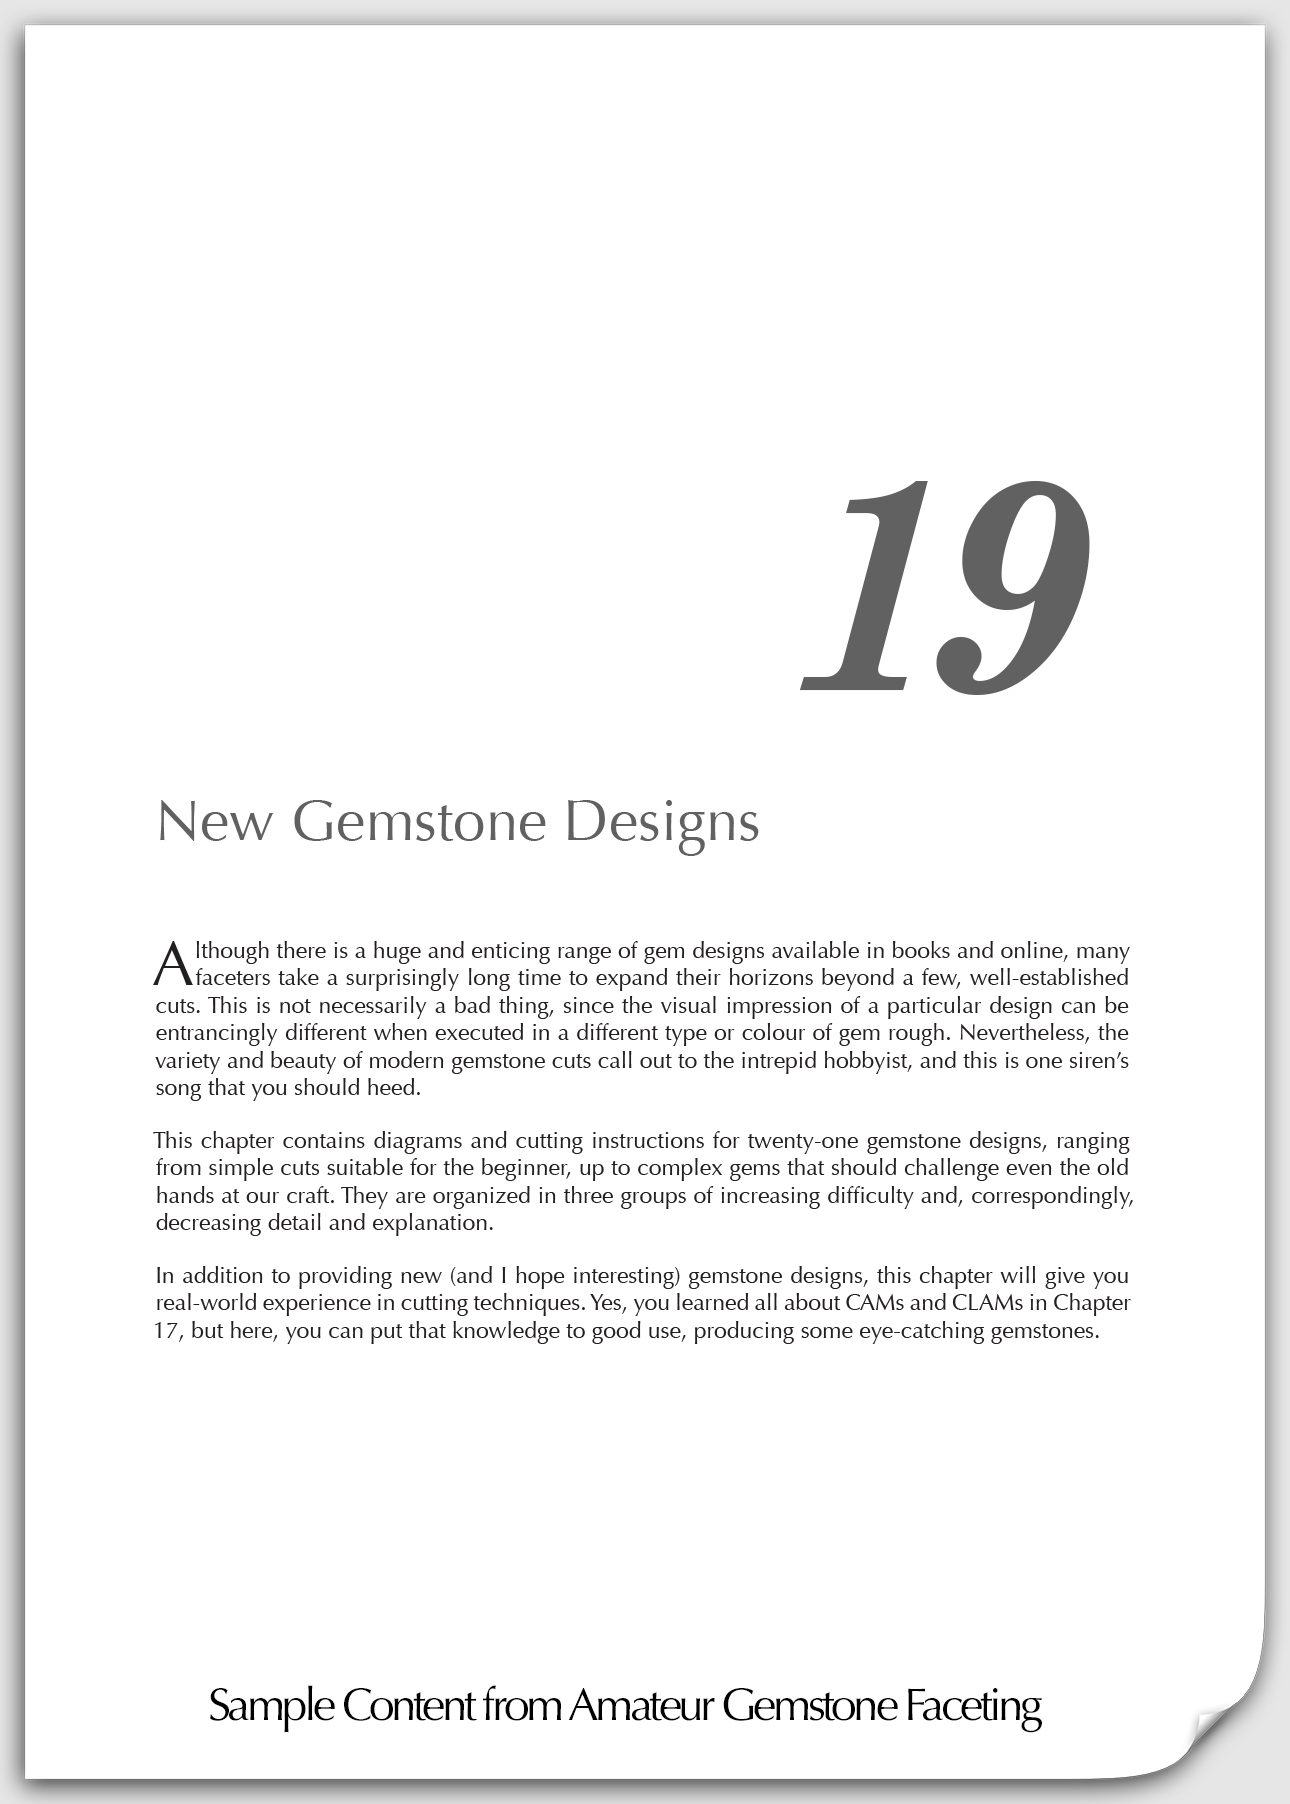 sample content chapter 19 new gemstone designs title page